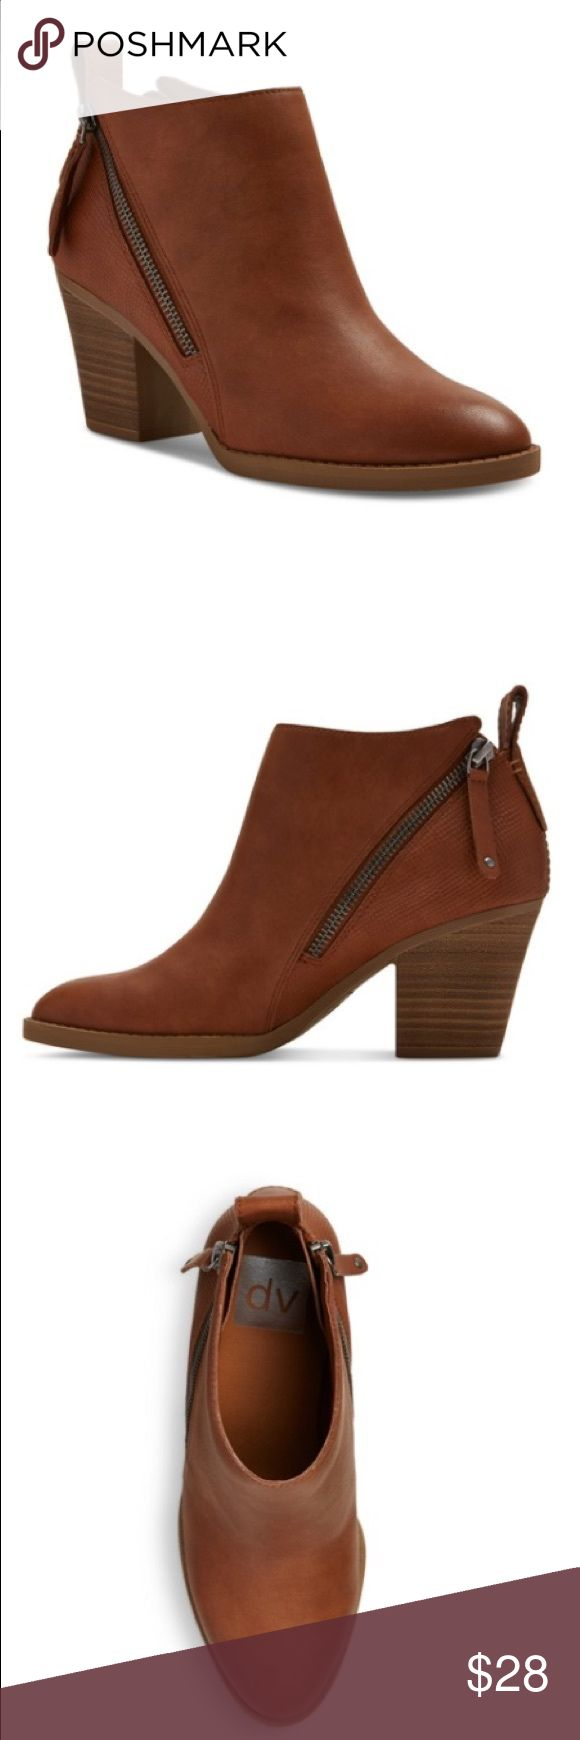 """Brown DV Ankle Boots Target, women's DV Jameson Double ZIP Booties in Cognac, EUC, 3"""" block heel for stable lift, faux leather upper, double zip for easy on and off, easy to clean with  a damp cloth Shoes Ankle Boots & Booties"""